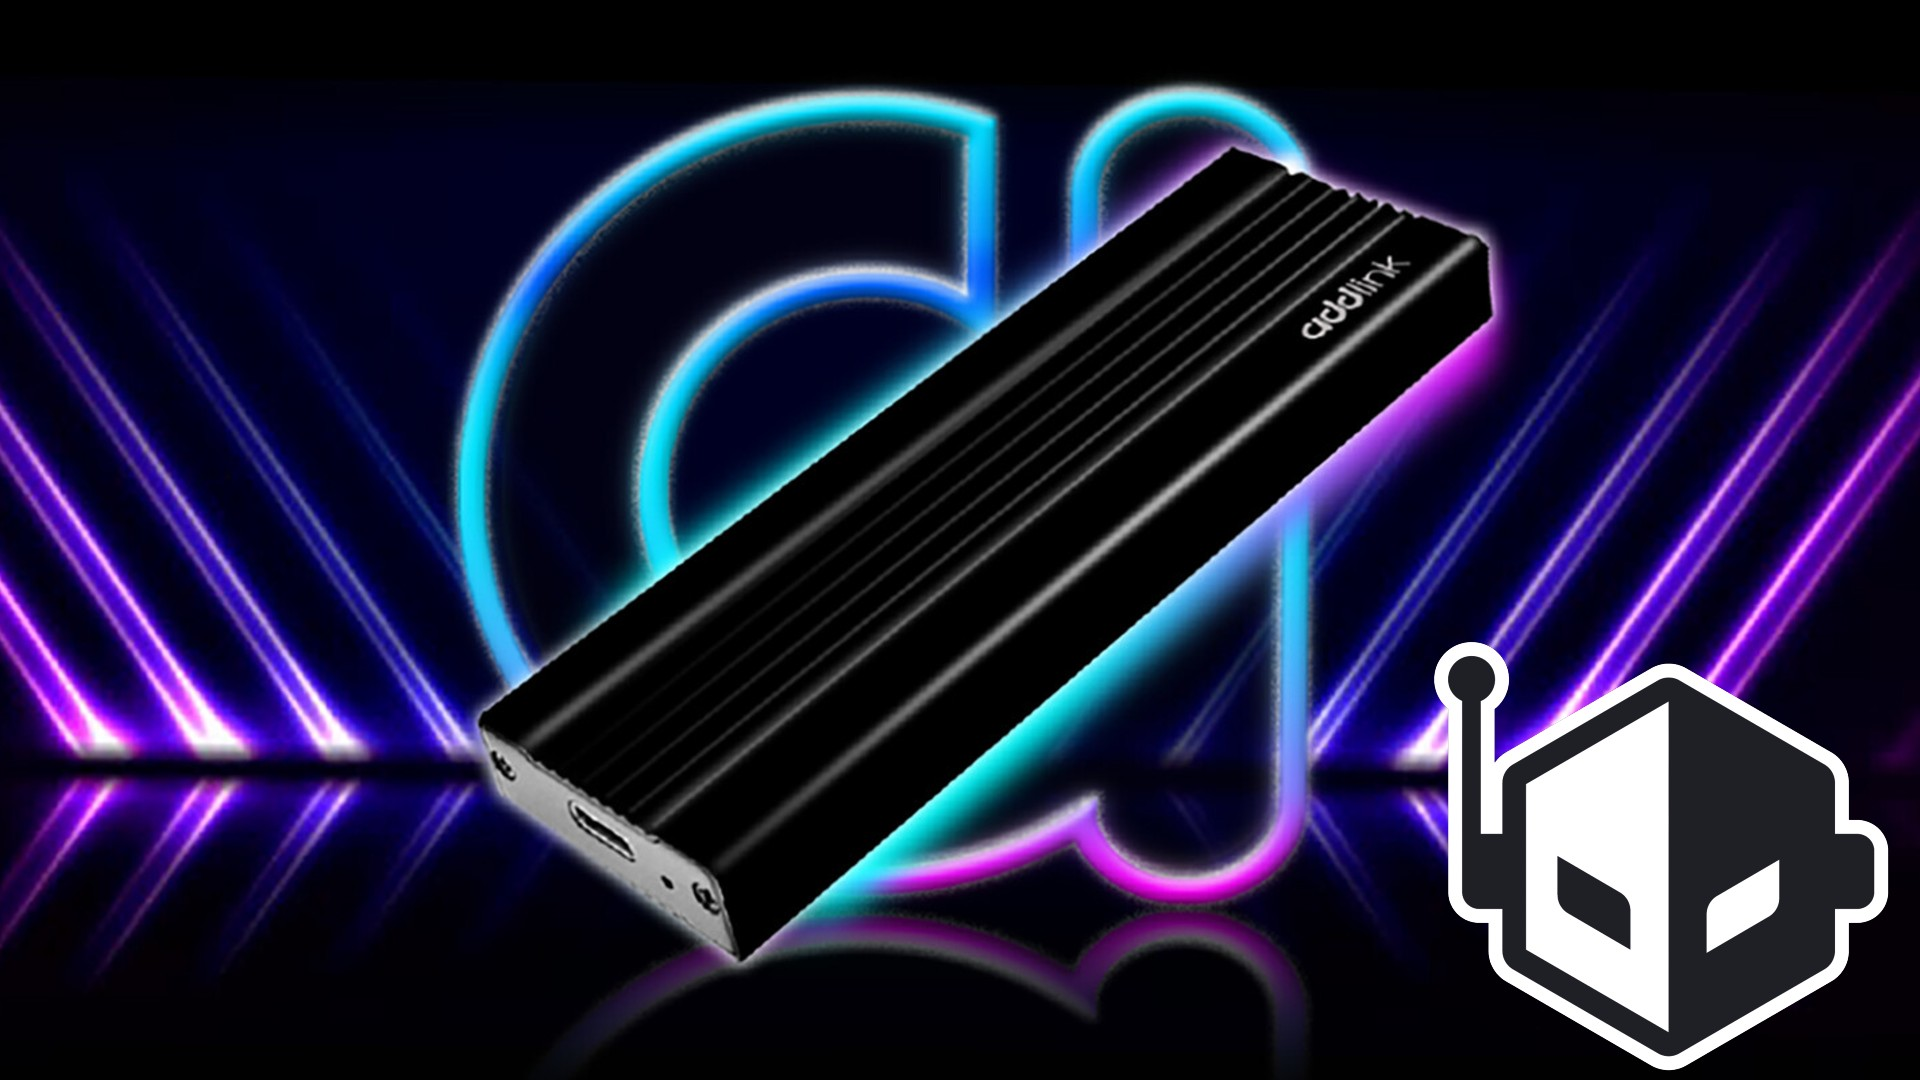 addlink Introduces the P20 Portable SSD Featuring the USB 3.2 Interface